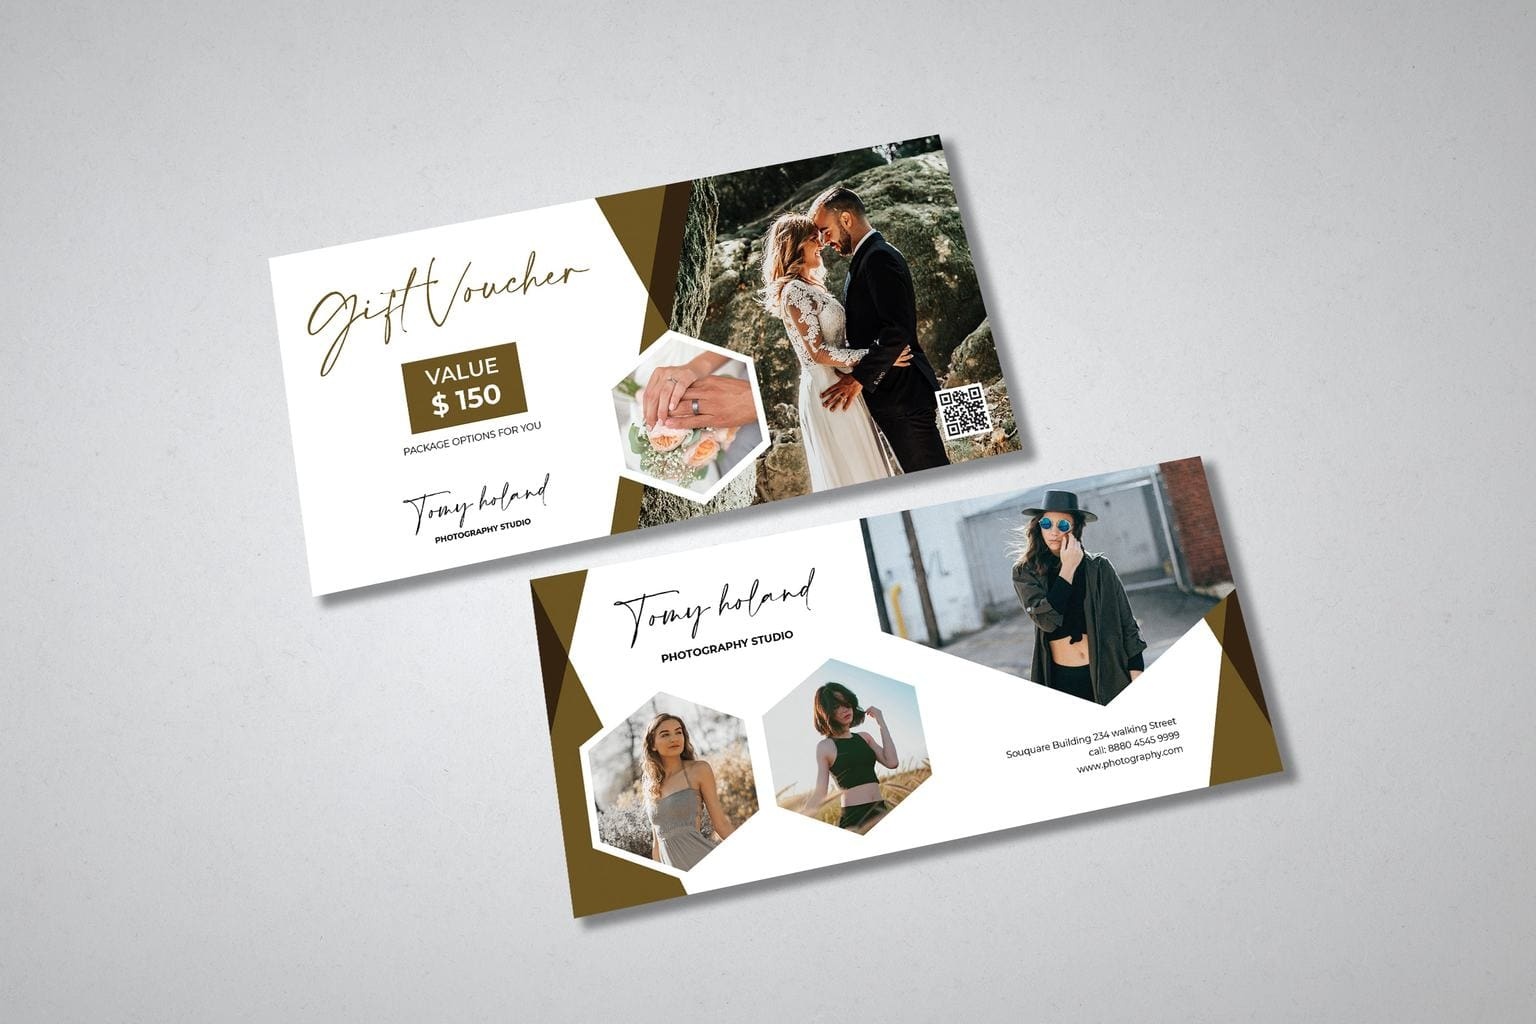 gift card voucher romantic wedding moment 1